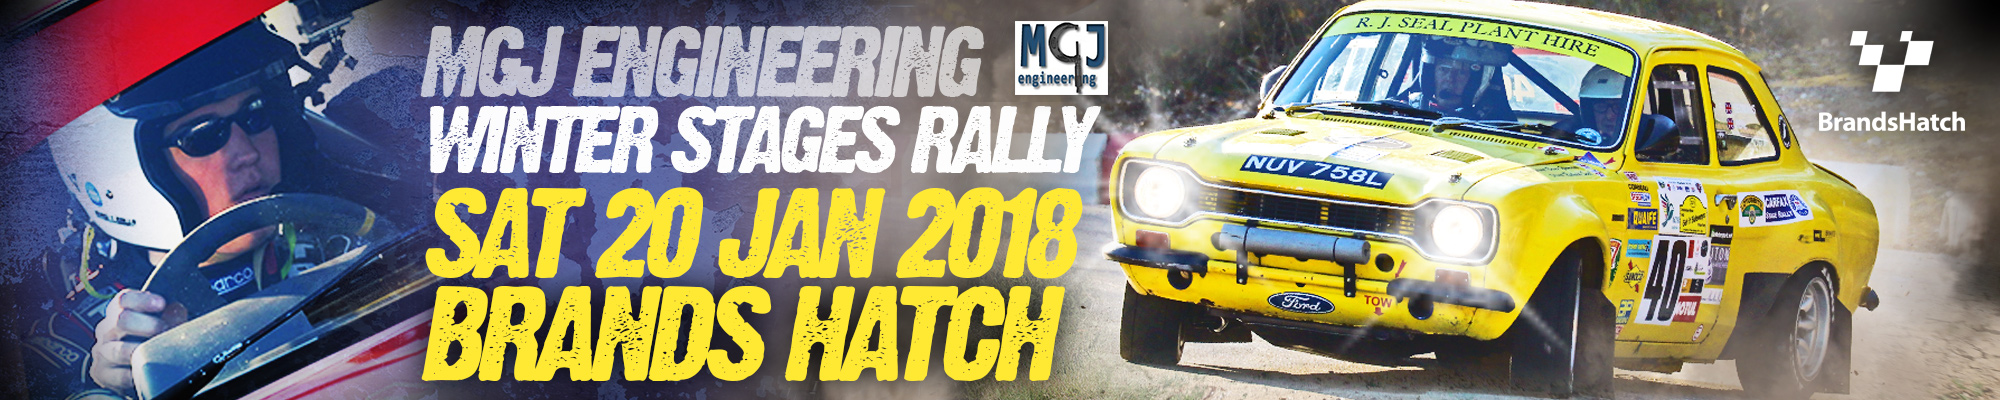 MGJ Engineering Winter Stage Rally